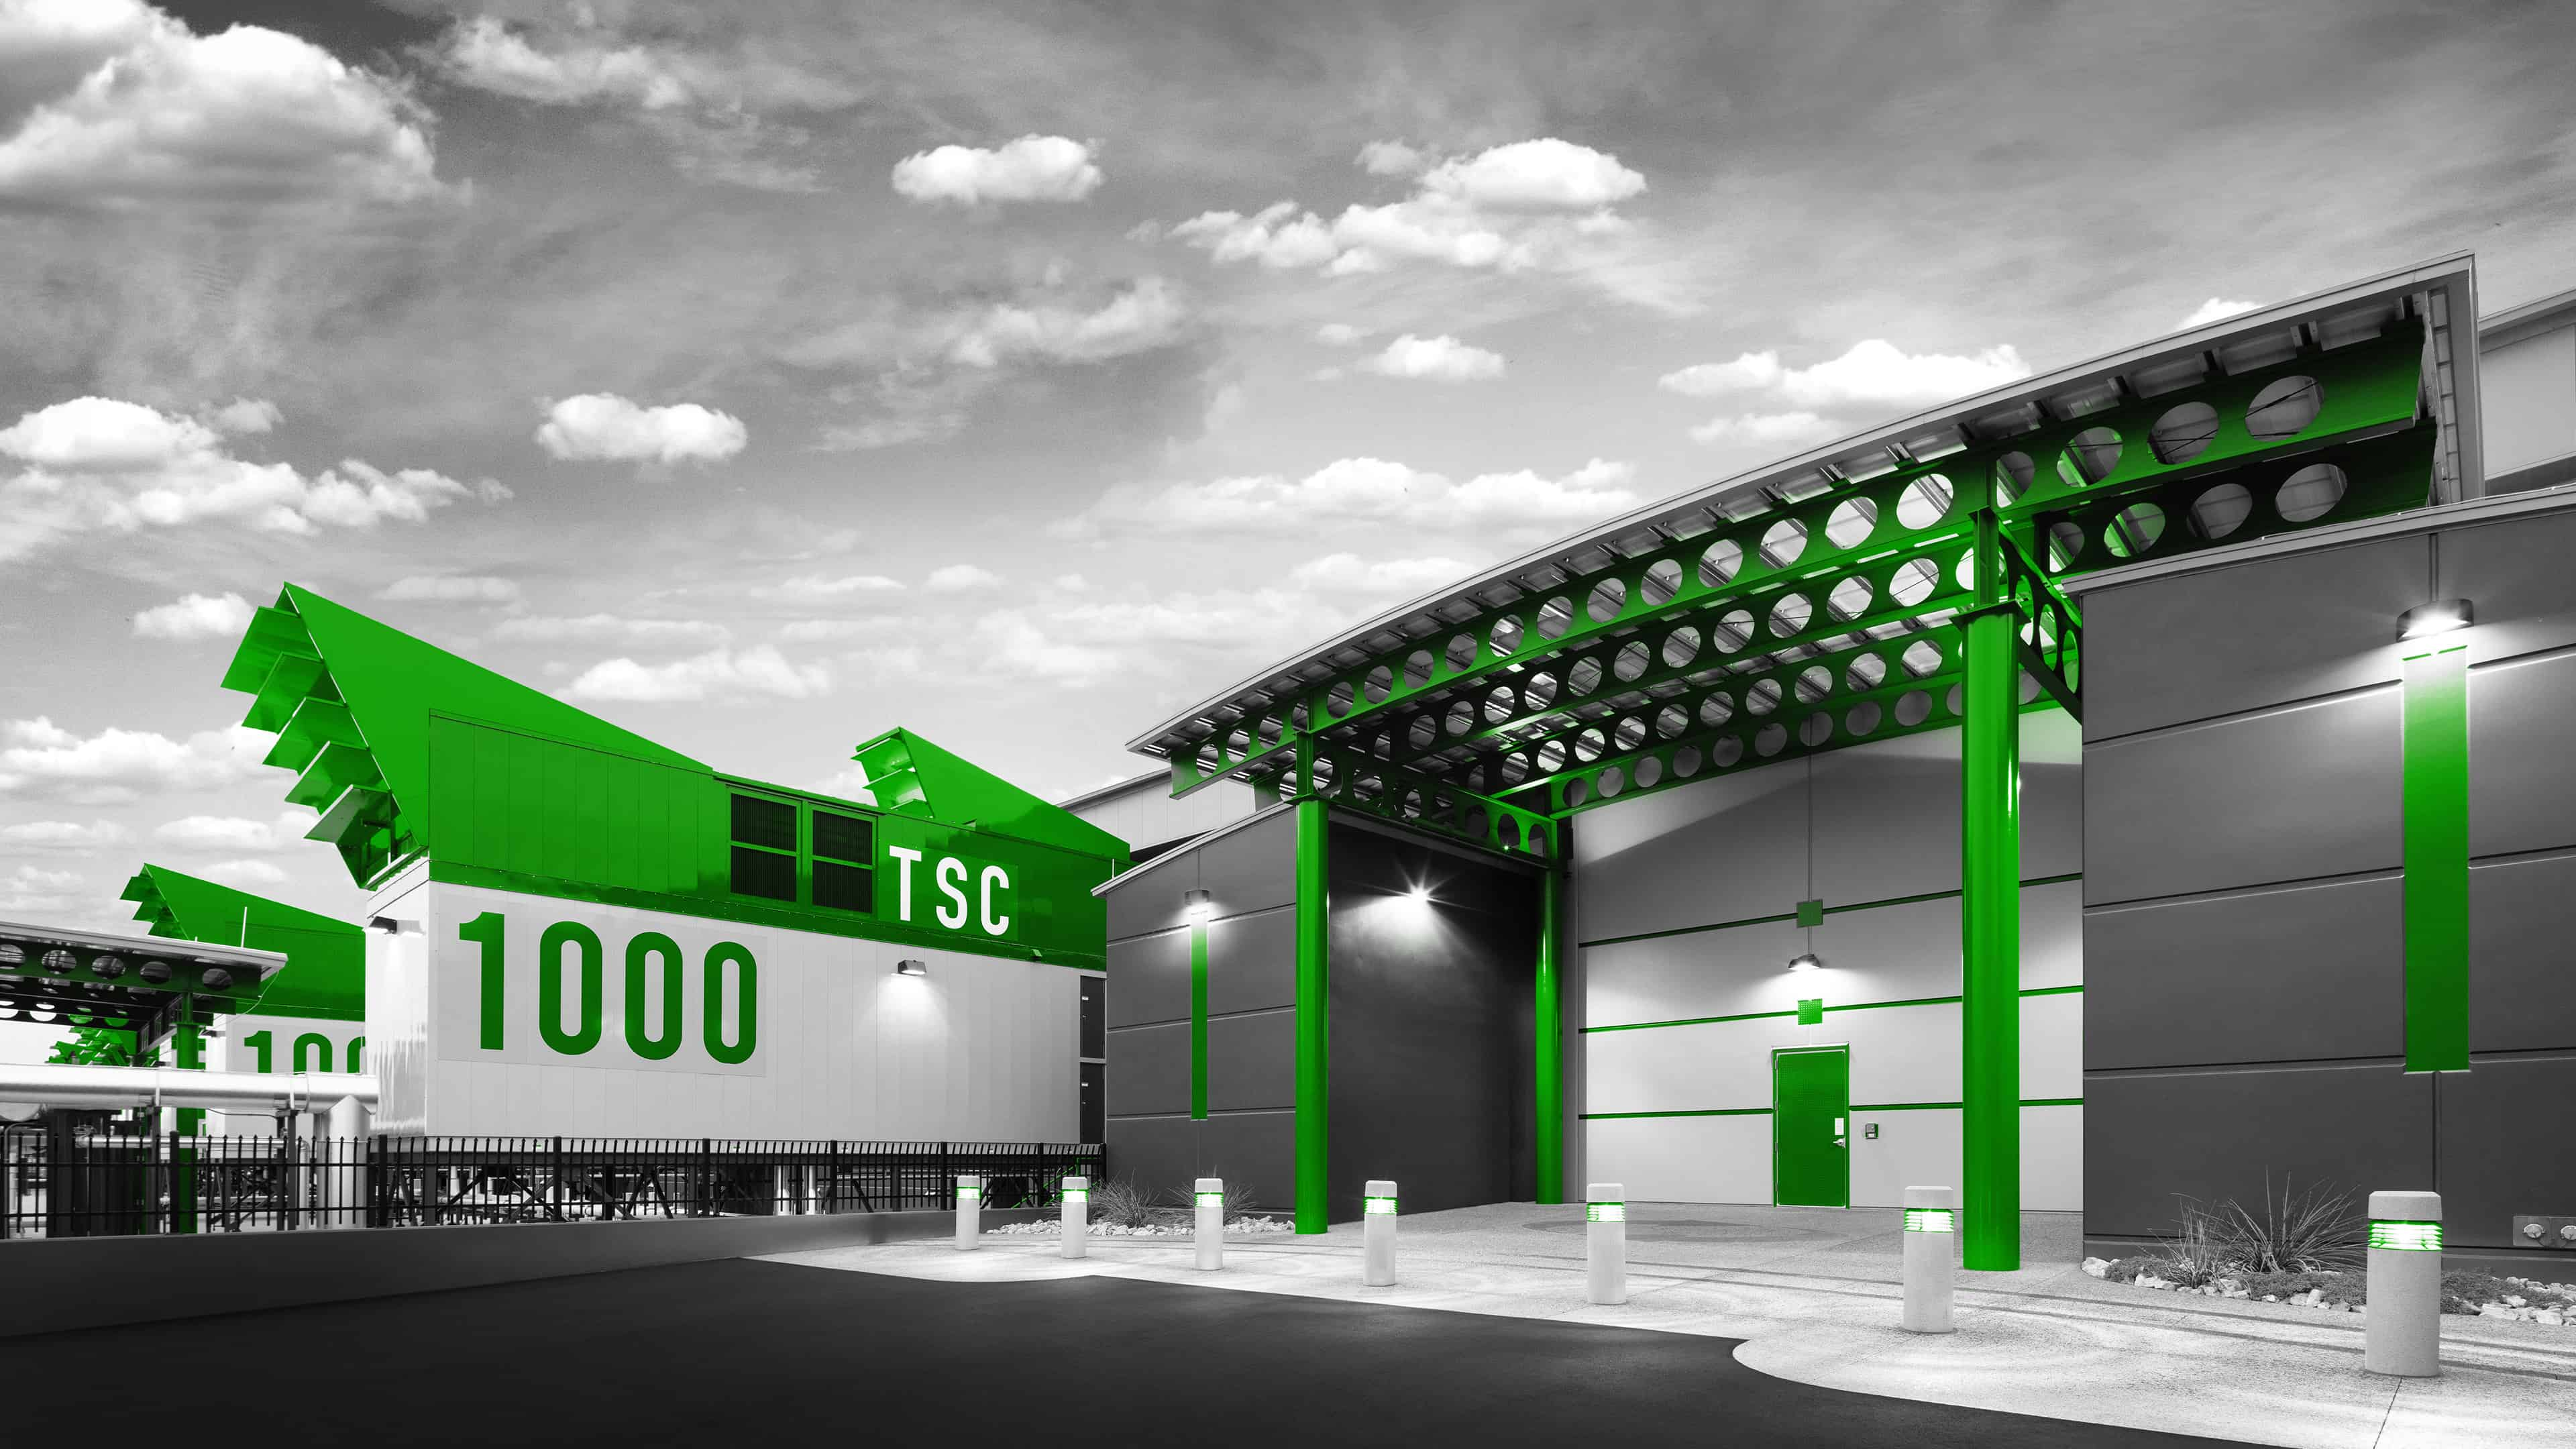 Effortless Achieves Corporate Sustainability by Operating in Switch Data Centers